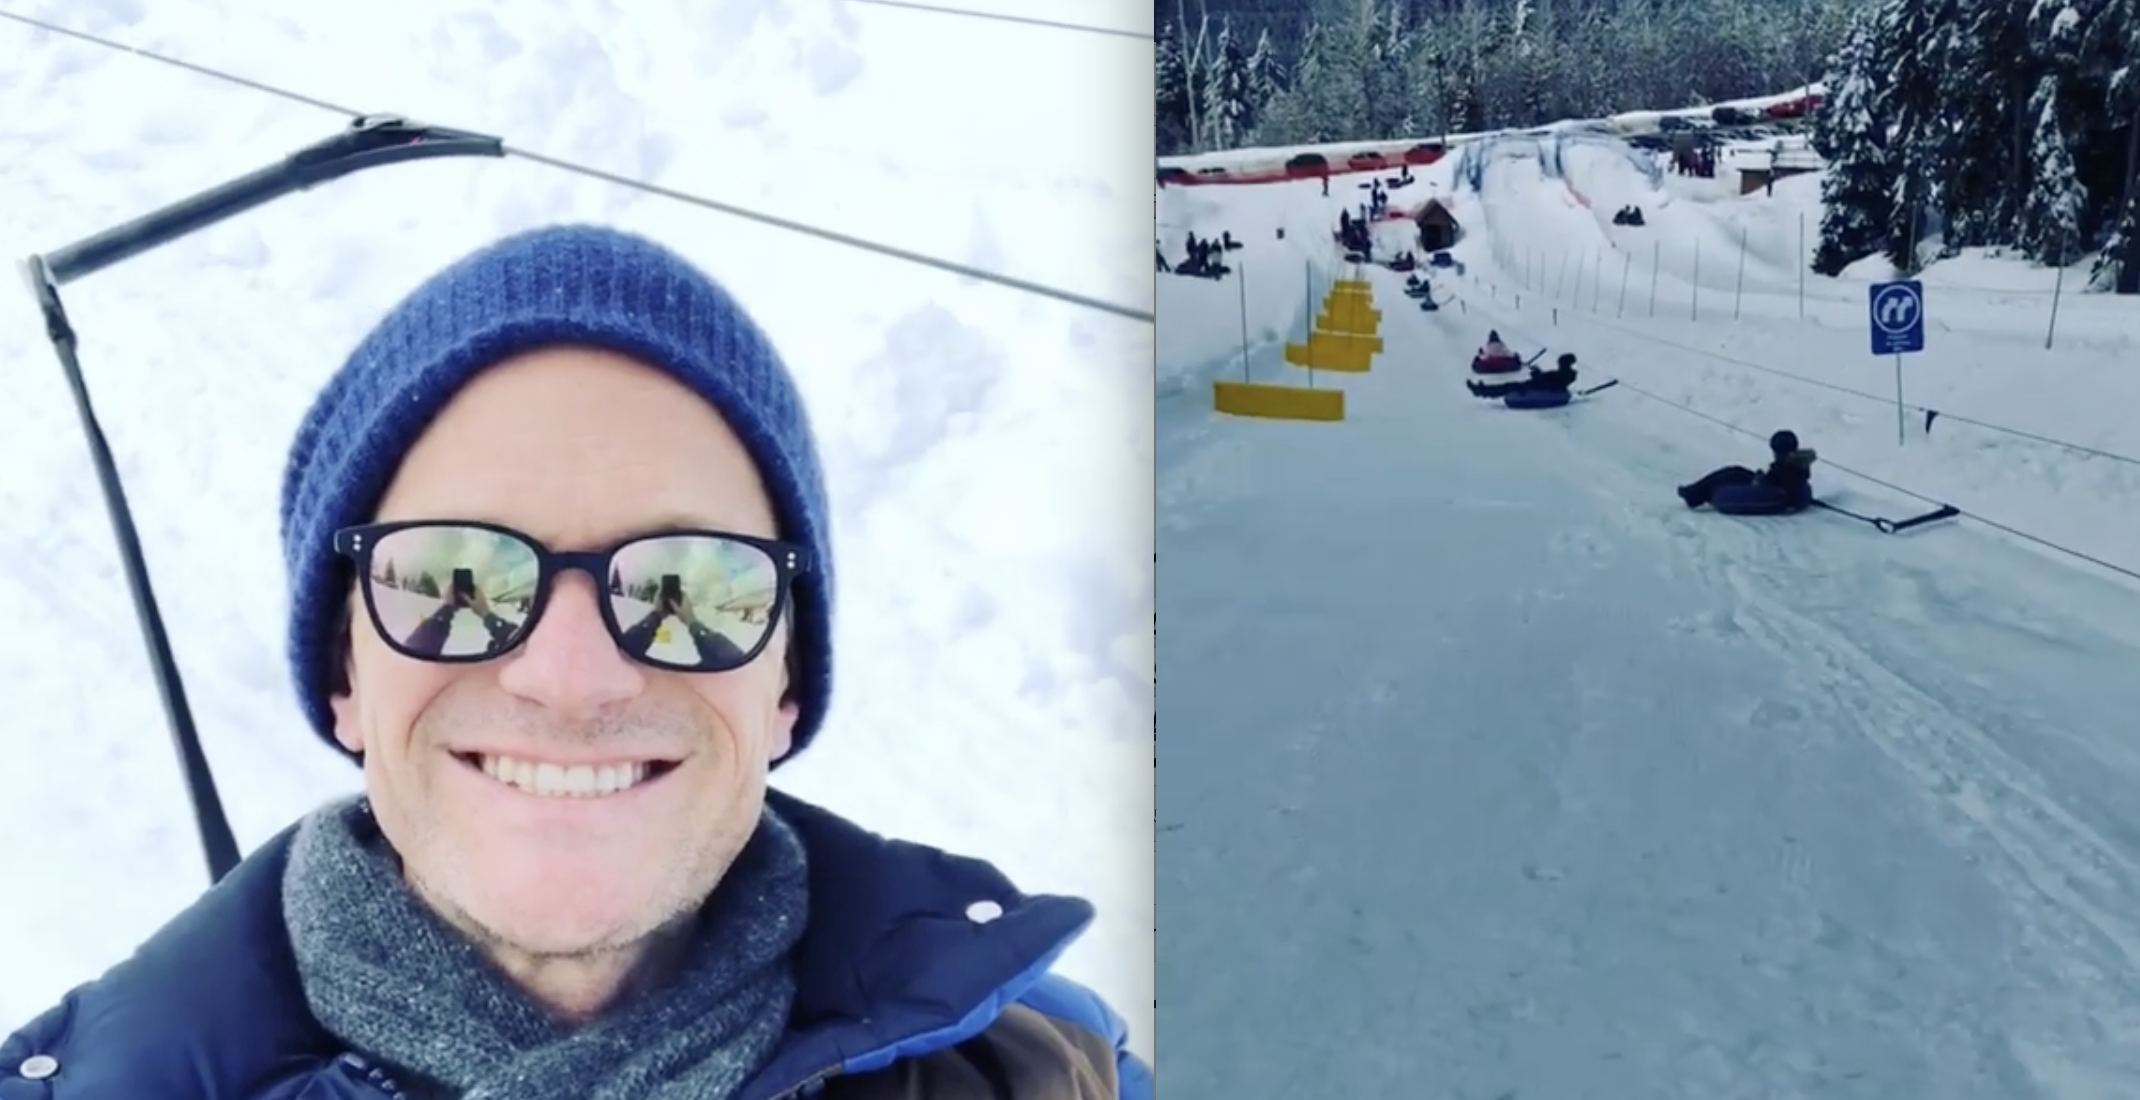 Neil Patrick Harris is showing some serious love for Vancouver (PHOTOS)